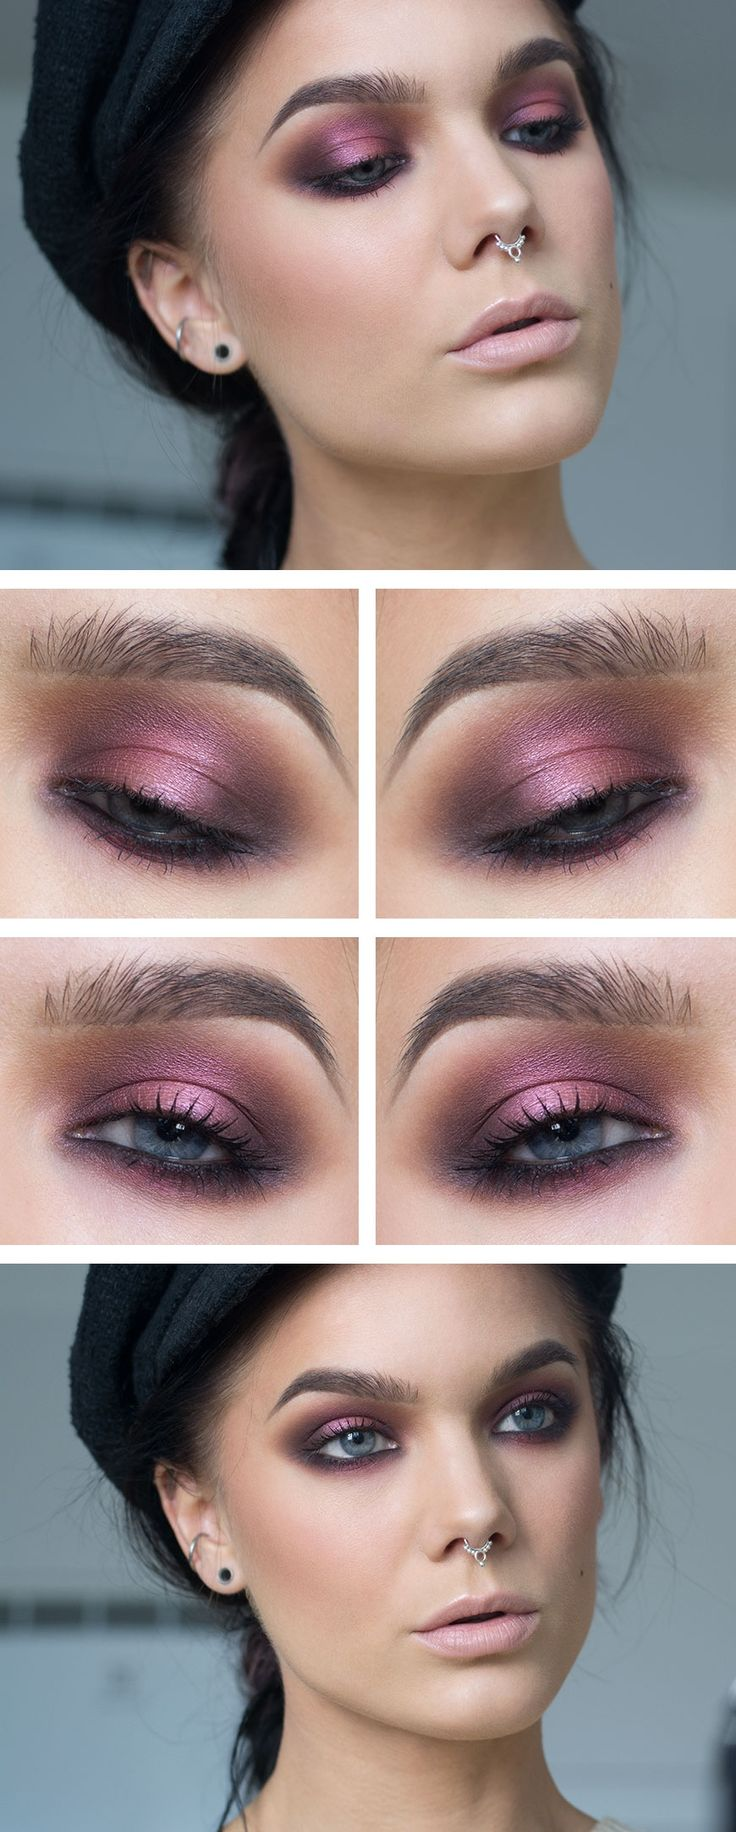 Hen Party - I chose this look for a hen party as it's fun to play with different colours for a smokey eye, keeping the skin flawless and a nude lips means all attention is drawn to the gorgeous bright fun colours used on the eyes